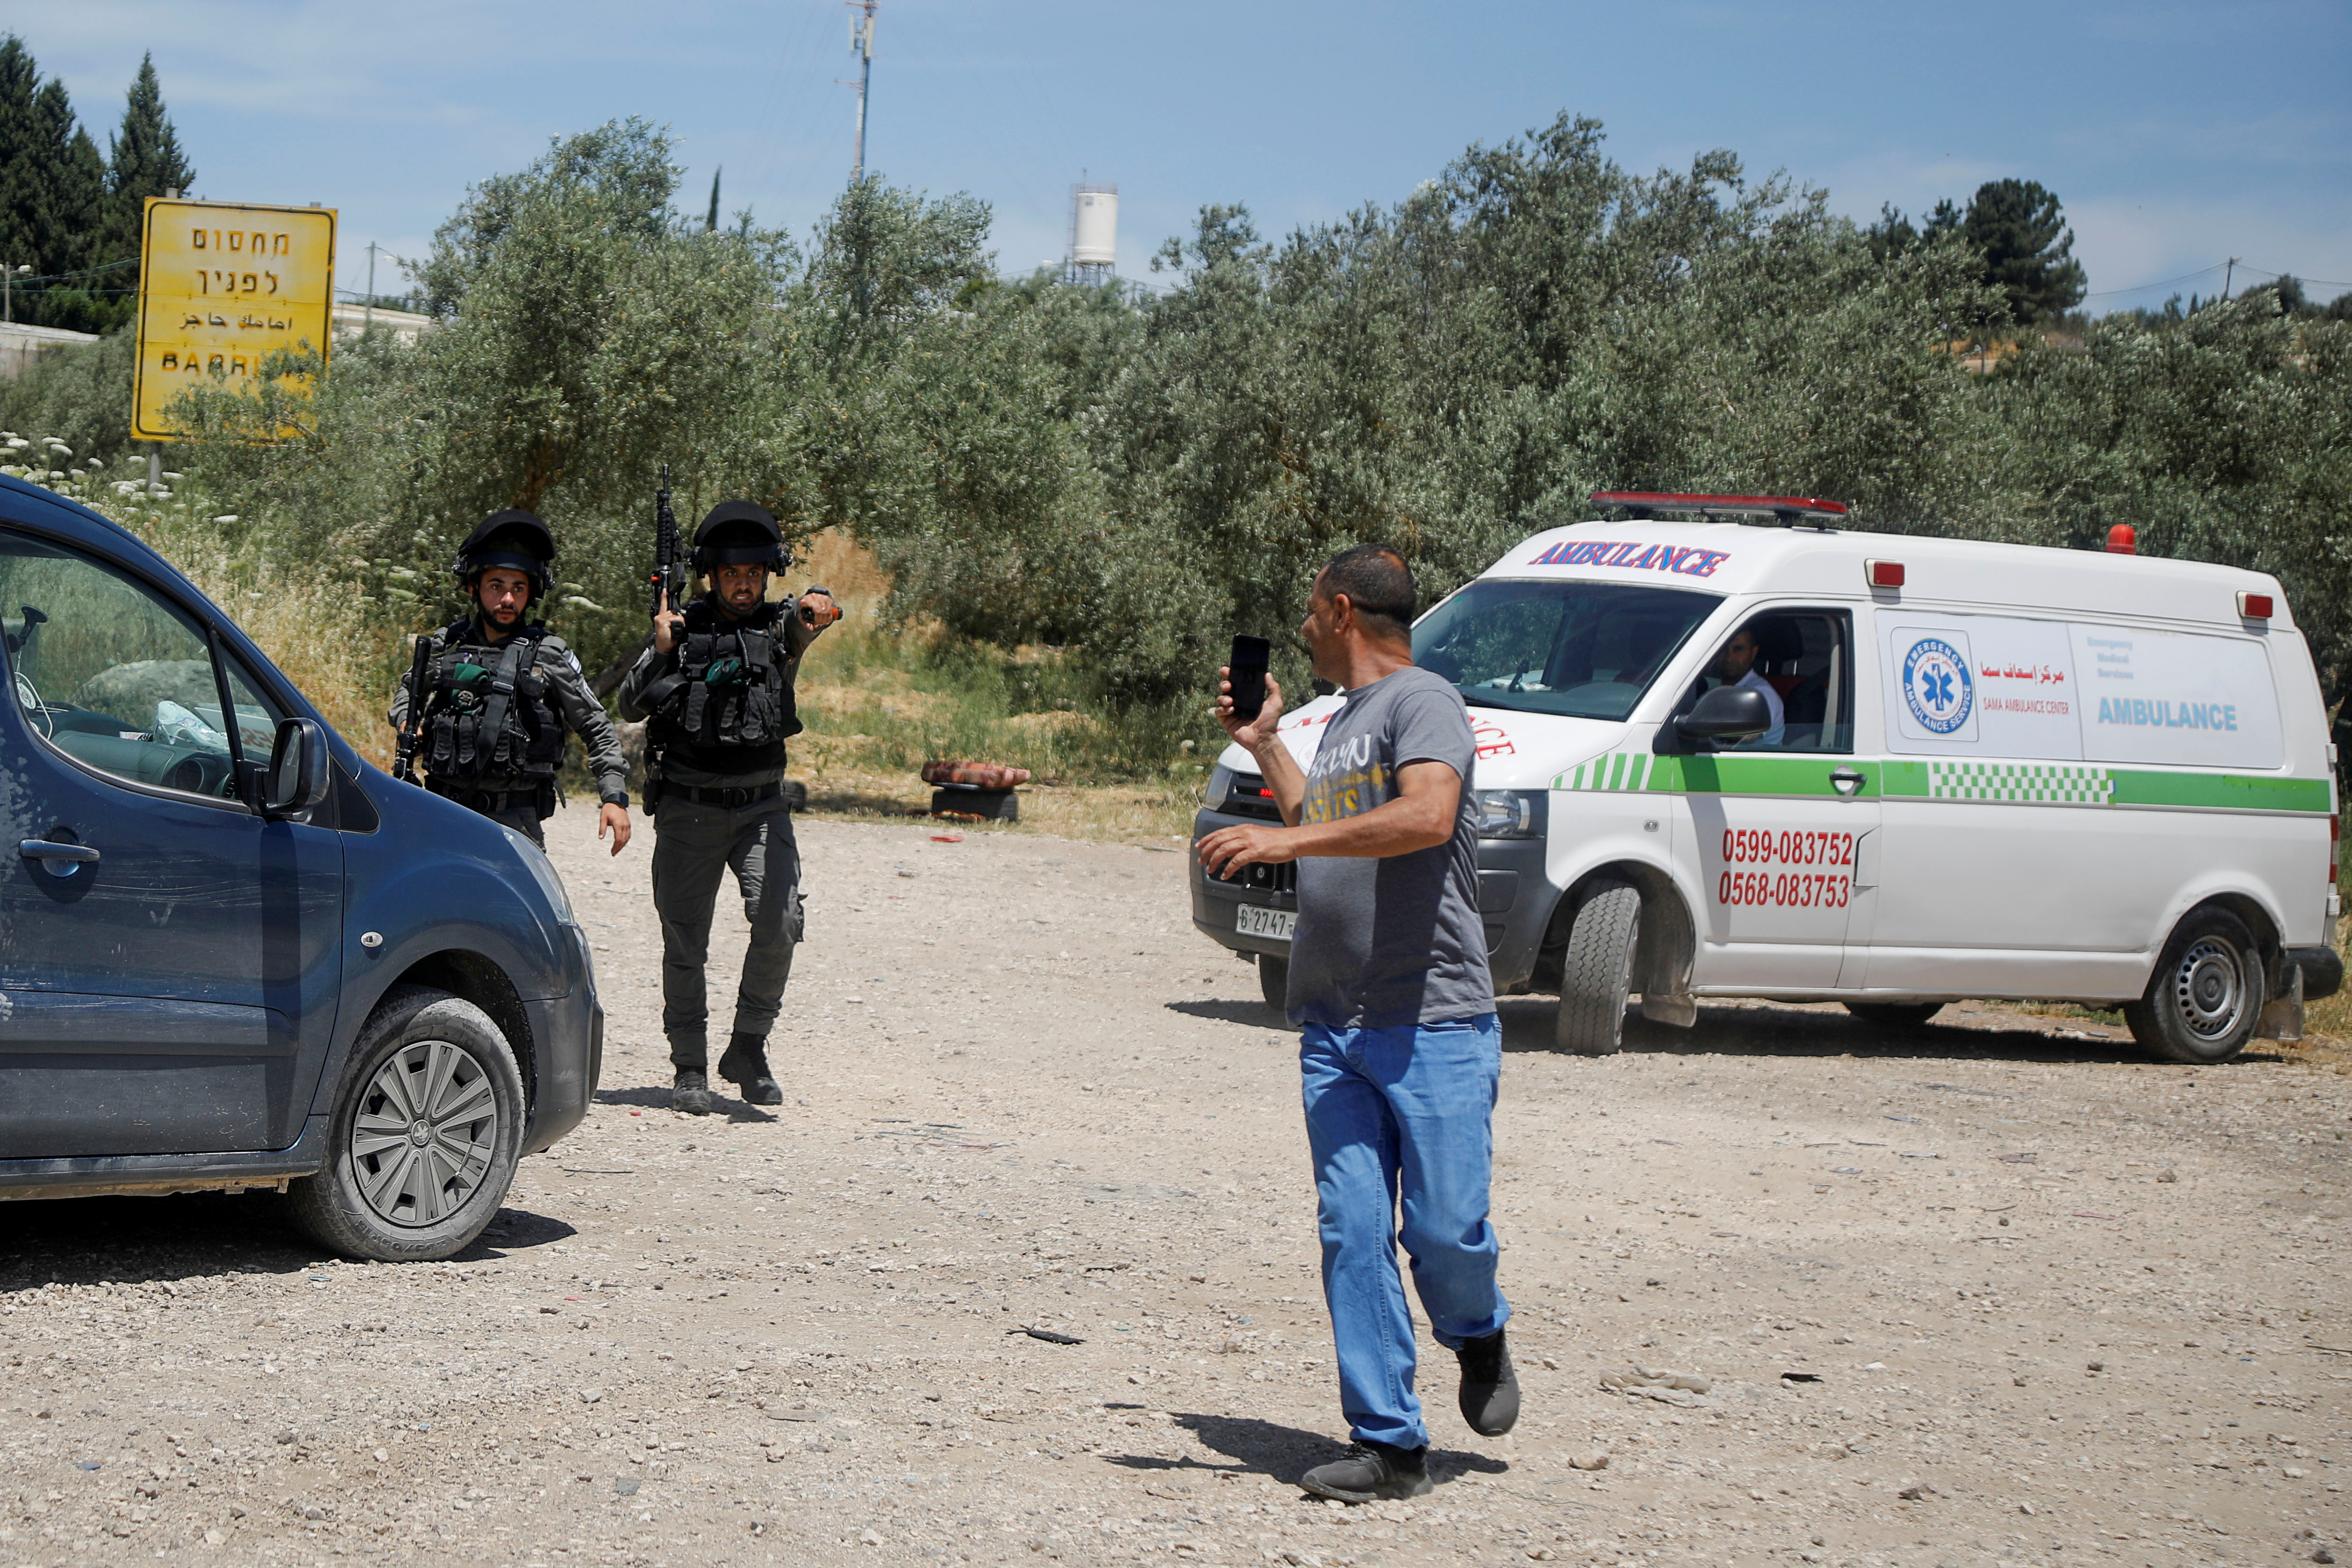 A Palestinian man uses his mobile to film Israeli border police members near the scene of a security incident at an Israeli military base near Jenin in the Israeli-occupied West Bank, May 7, 2021. REUTERS/Raneen Sawafta